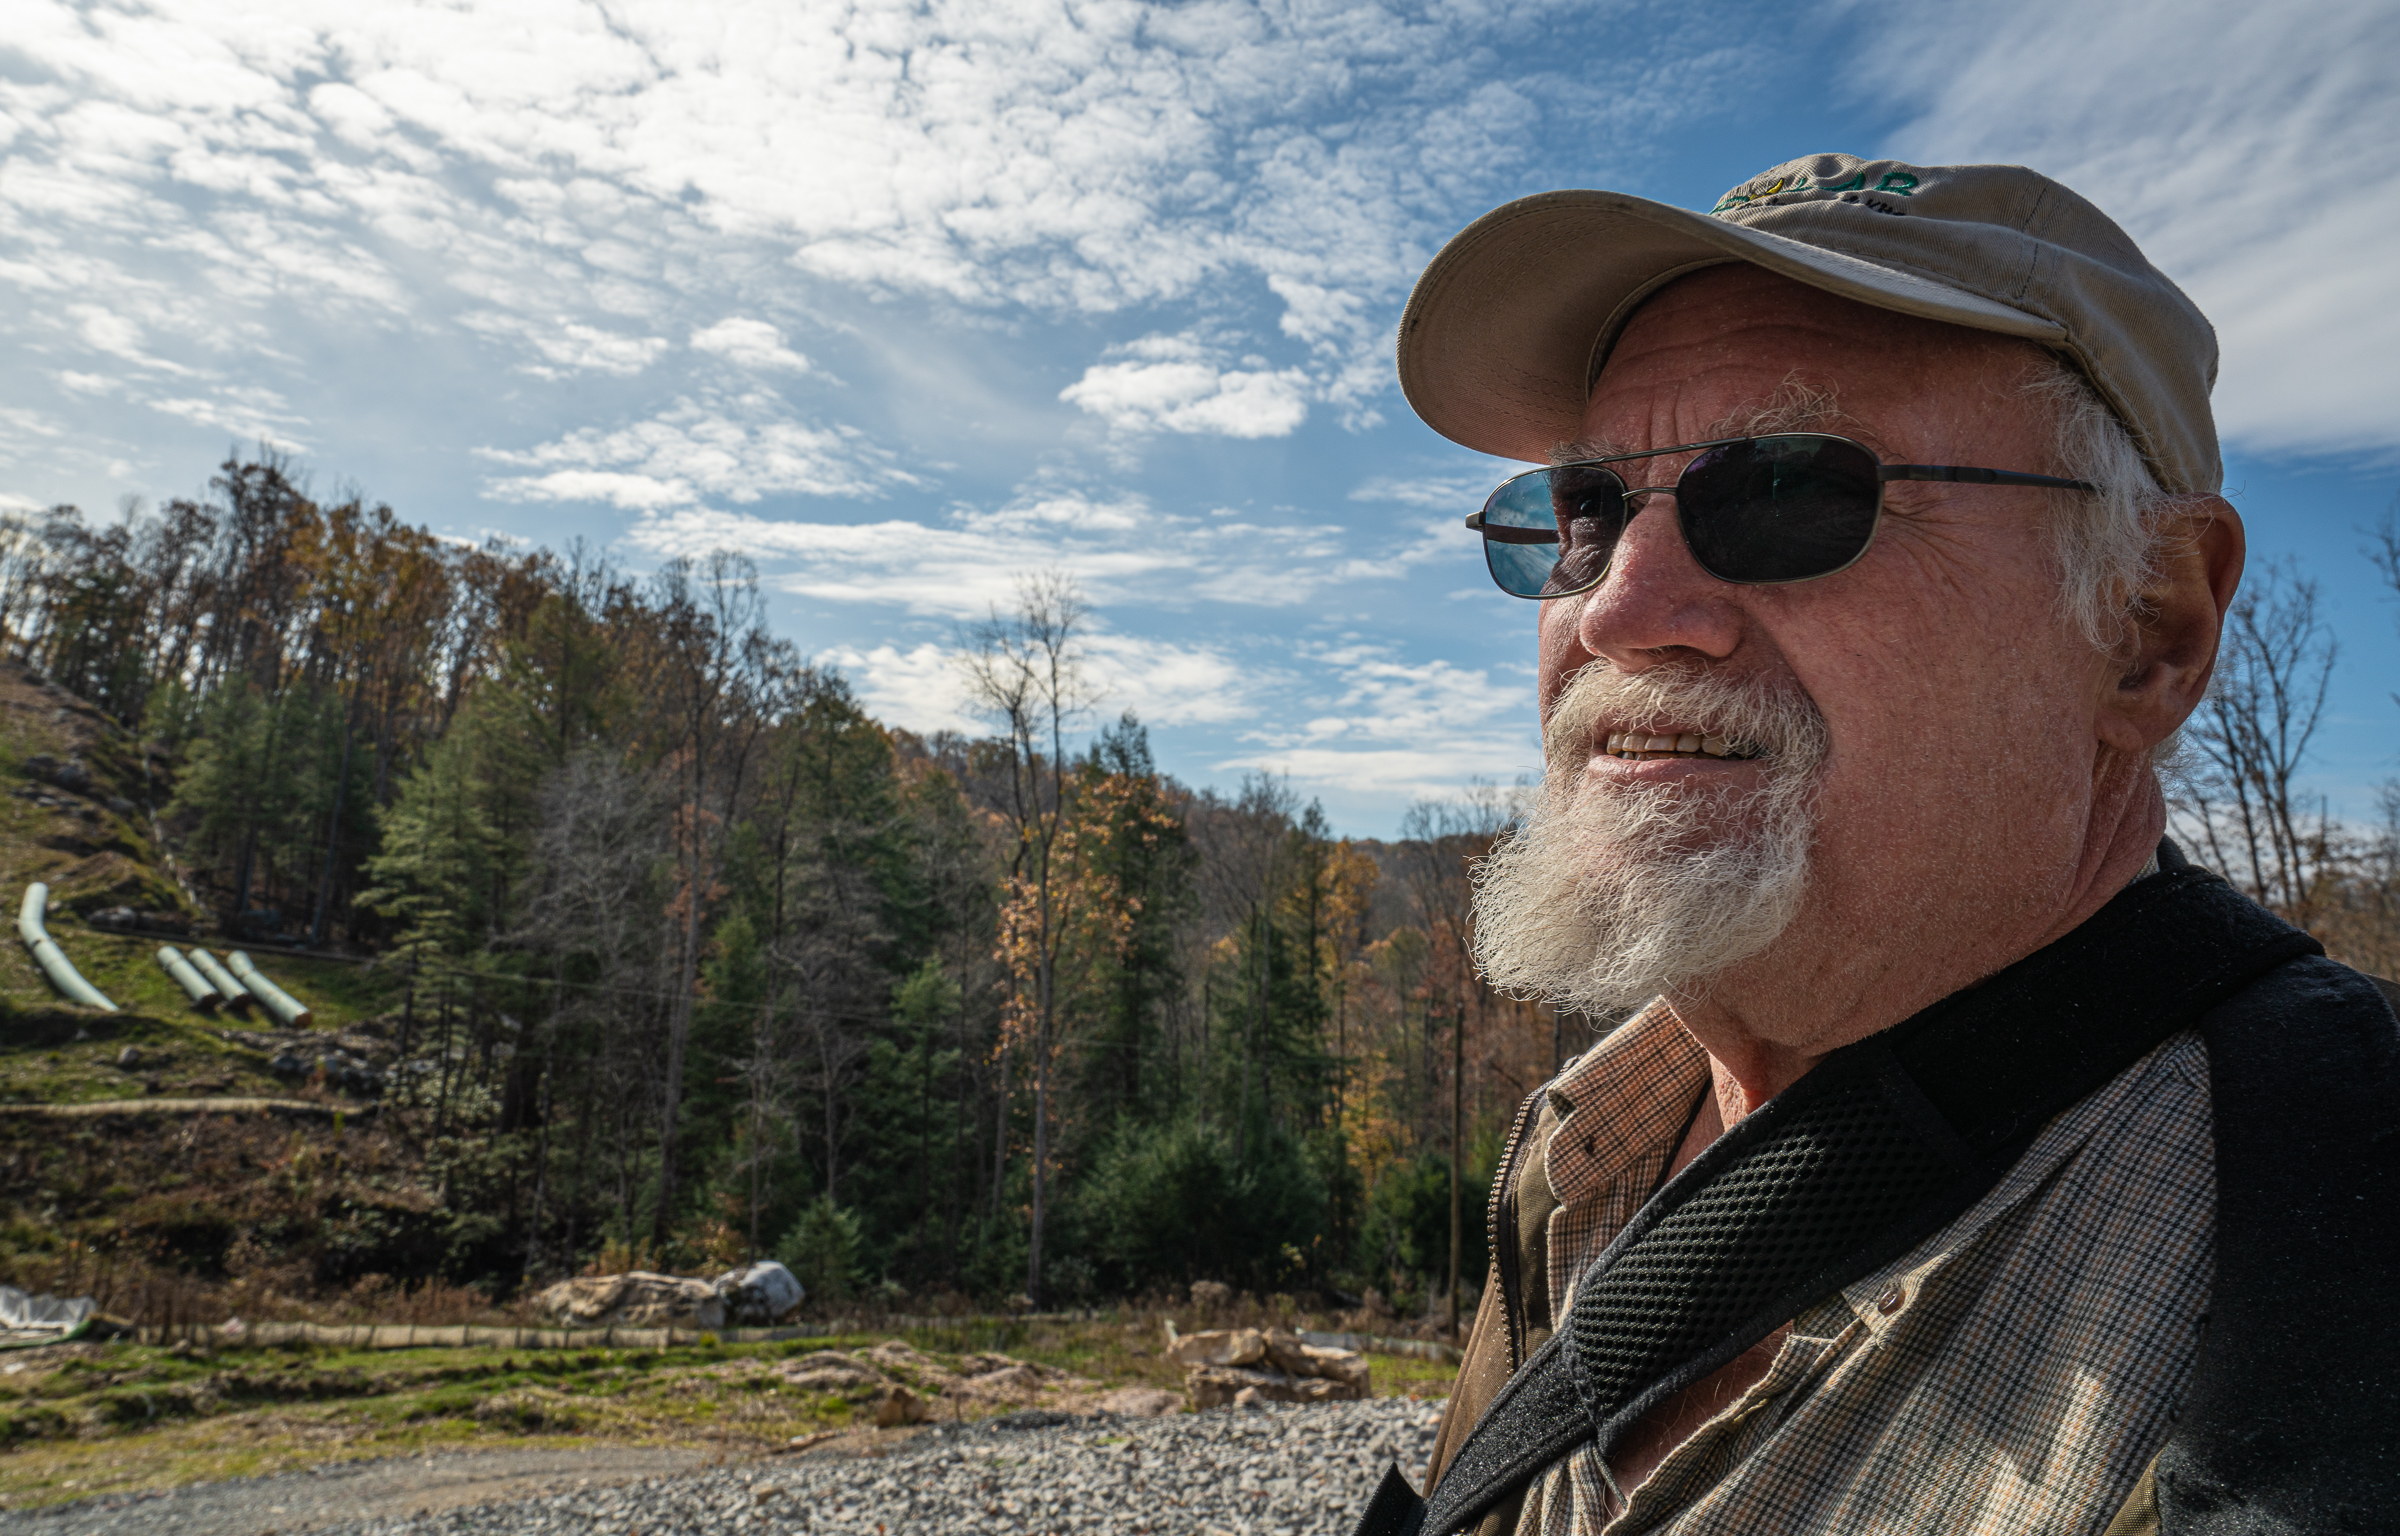 Retired oil-and-gas worker Kevin Campbell discusses his concerns about one of many Atlantic Coast Pipeline construction sites in Buckhannon, West Virginia. Photograph by Steven David Johnson